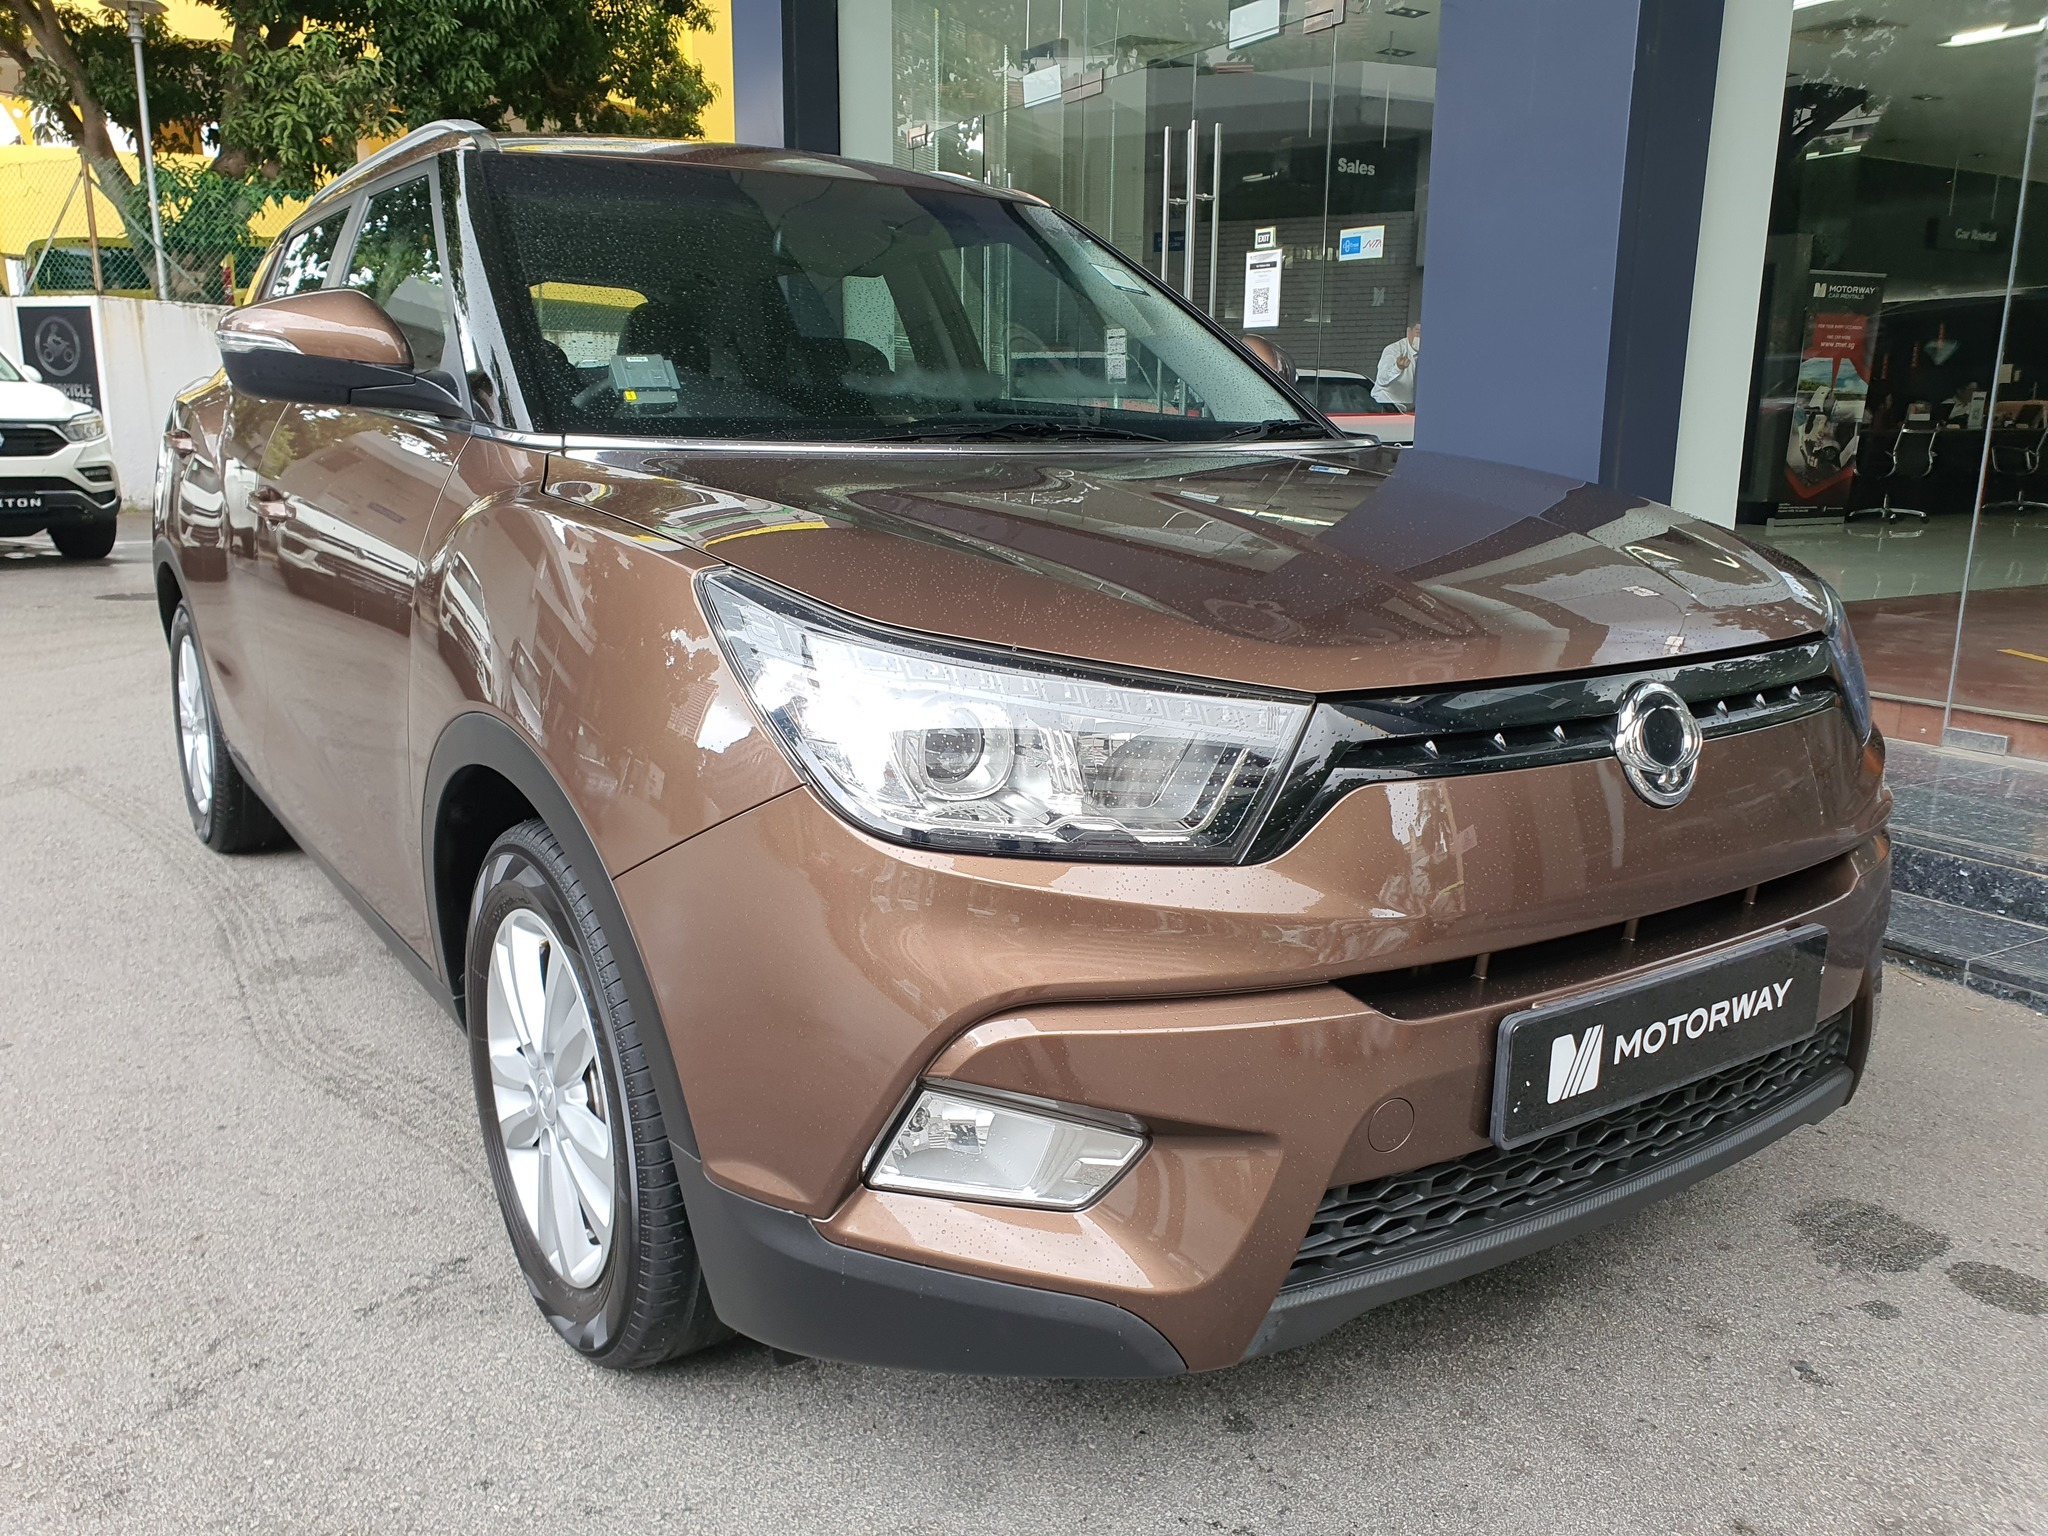 SSANGYONG TIVOLI 1.6G 6AT ABS 2WD